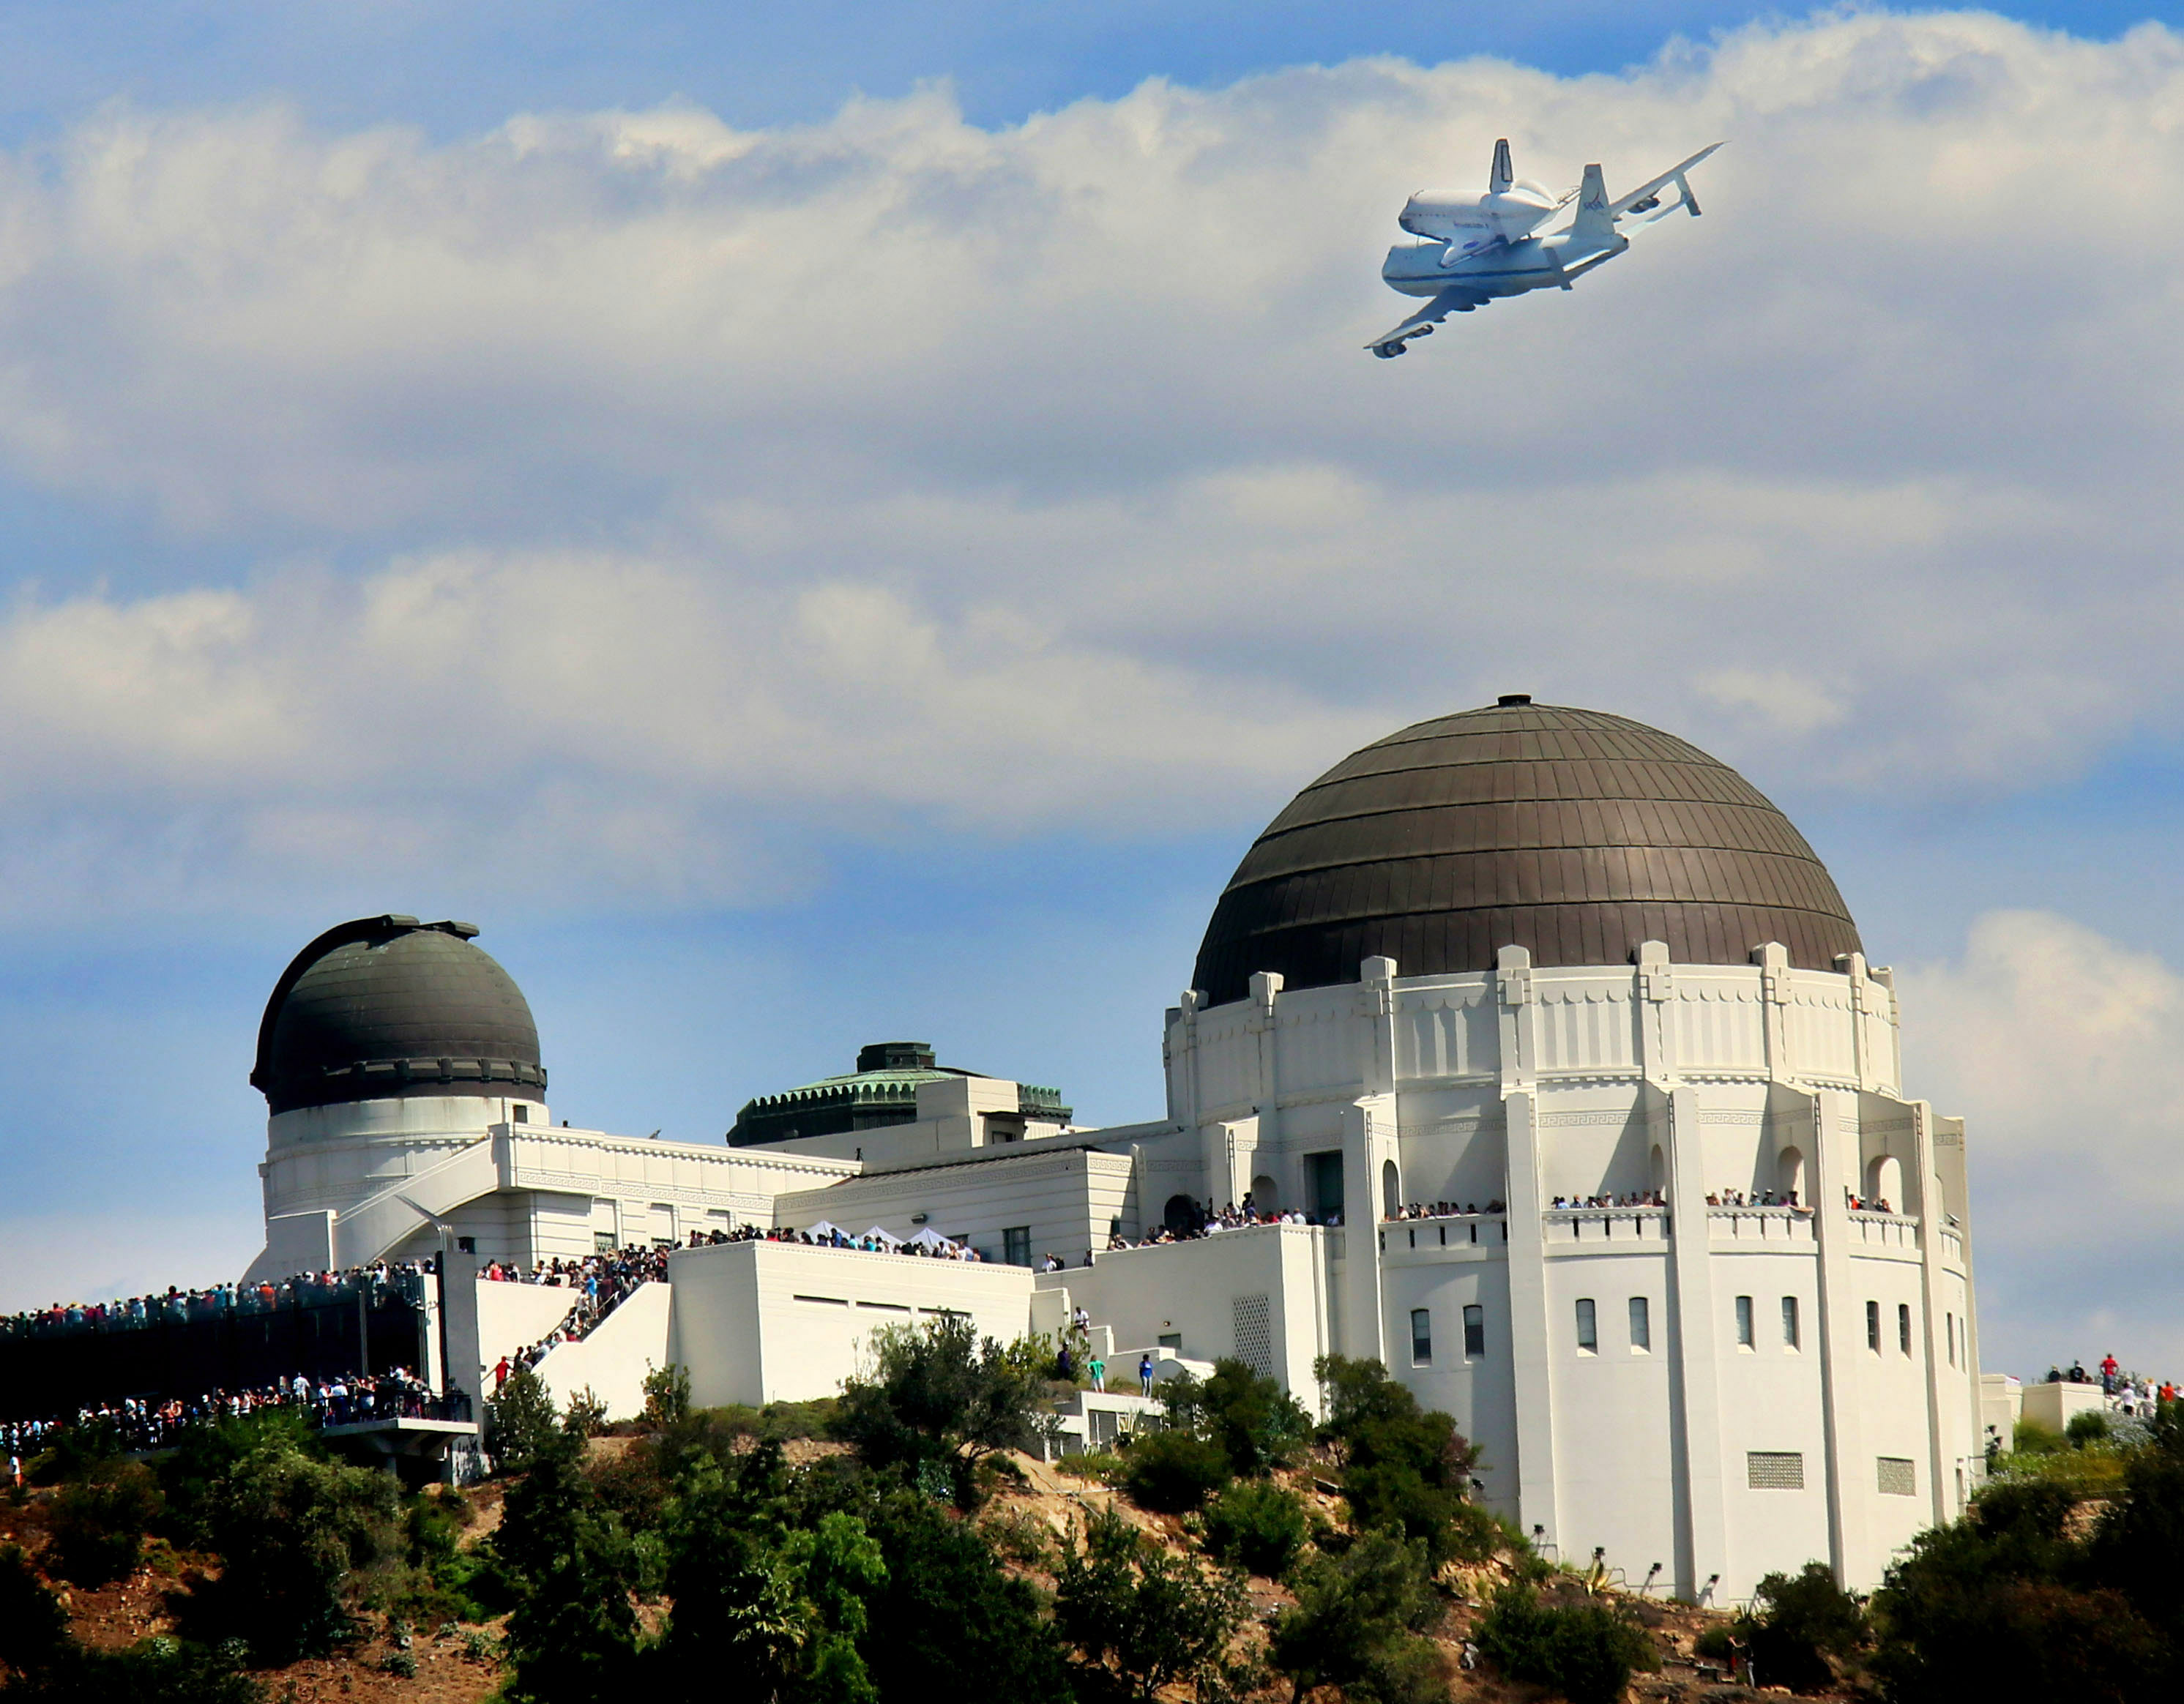 space shuttle in los angeles - photo #33